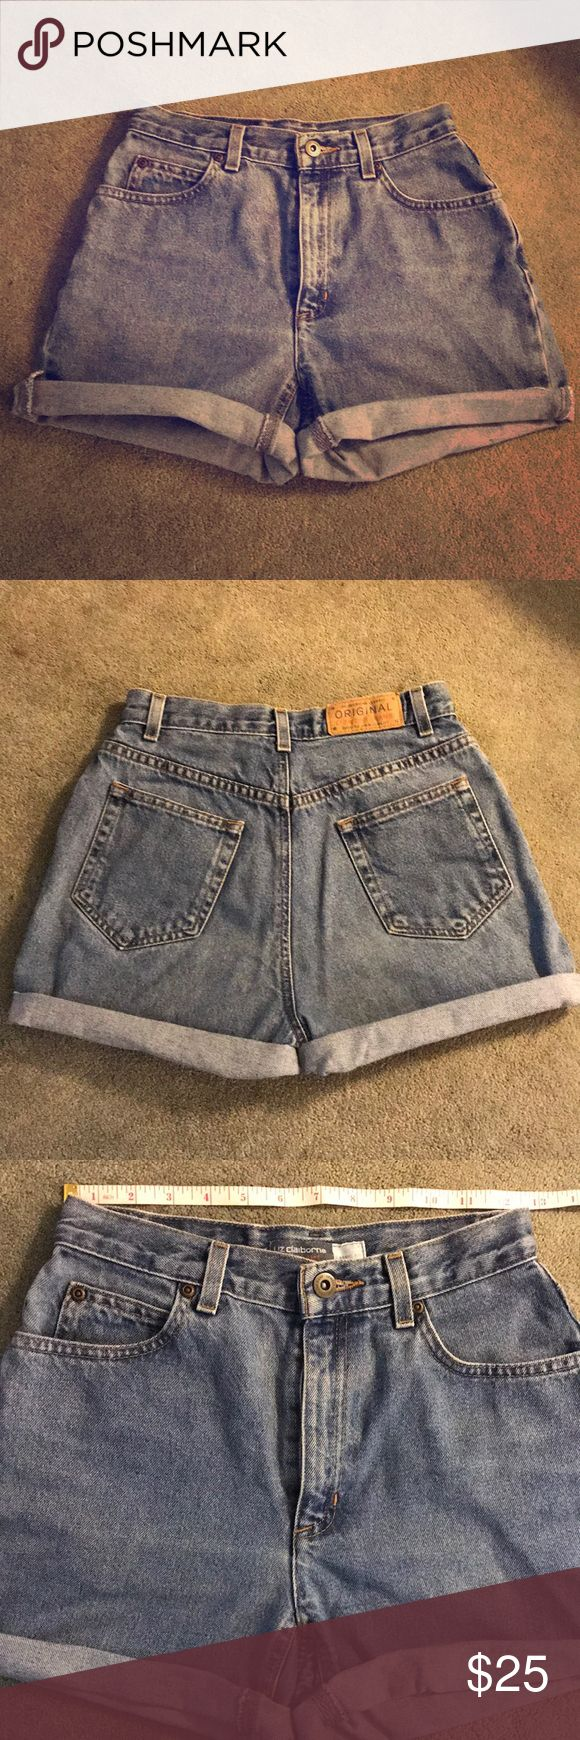 """Vintage cut off shorts These are great """"mom"""" shorts! Vintage wash and fit: high rise (app. 10""""), sits at natural waist (app. 25"""") and loose through the hip (app. 35""""). Inseam is 3.5"""" when rolled, about 5"""" unrolled. I ordered these online and they just don't work for me. These are a vintage piece so there is fading, loose threads, fraying, etc. that is part of the 90's look. Size labeled as 4P, but fit like a 2 or 25. Last pic shown for fit/style. Shorts"""